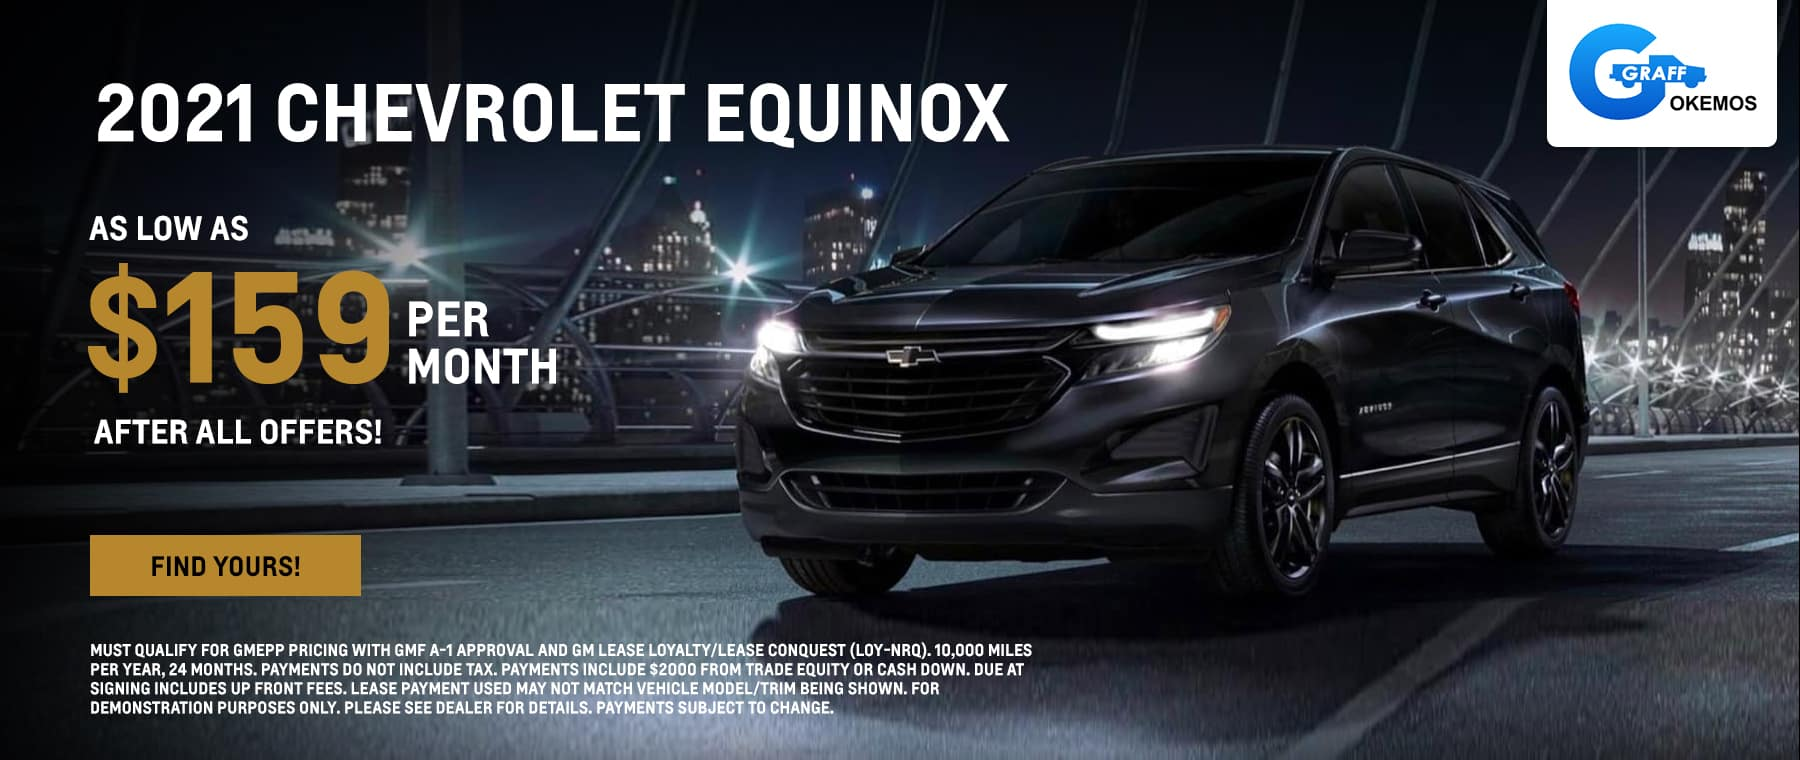 2021 Chevy Equinox AS LOW AS $159 PER MONTH AFTER ALL OFFERS!*